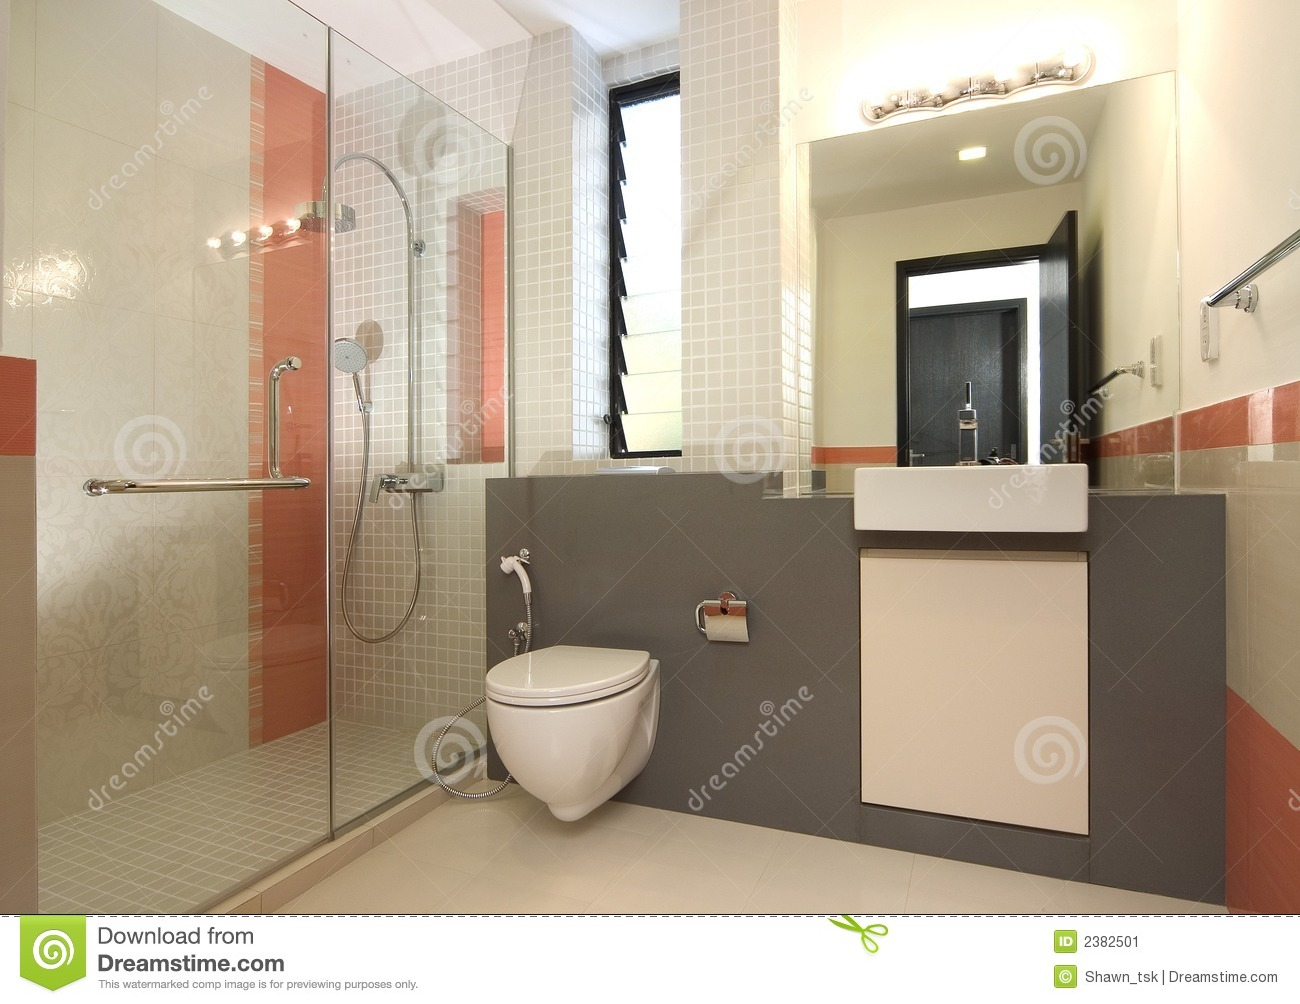 Interior design bathroom stock image image of light for Toilet interior design